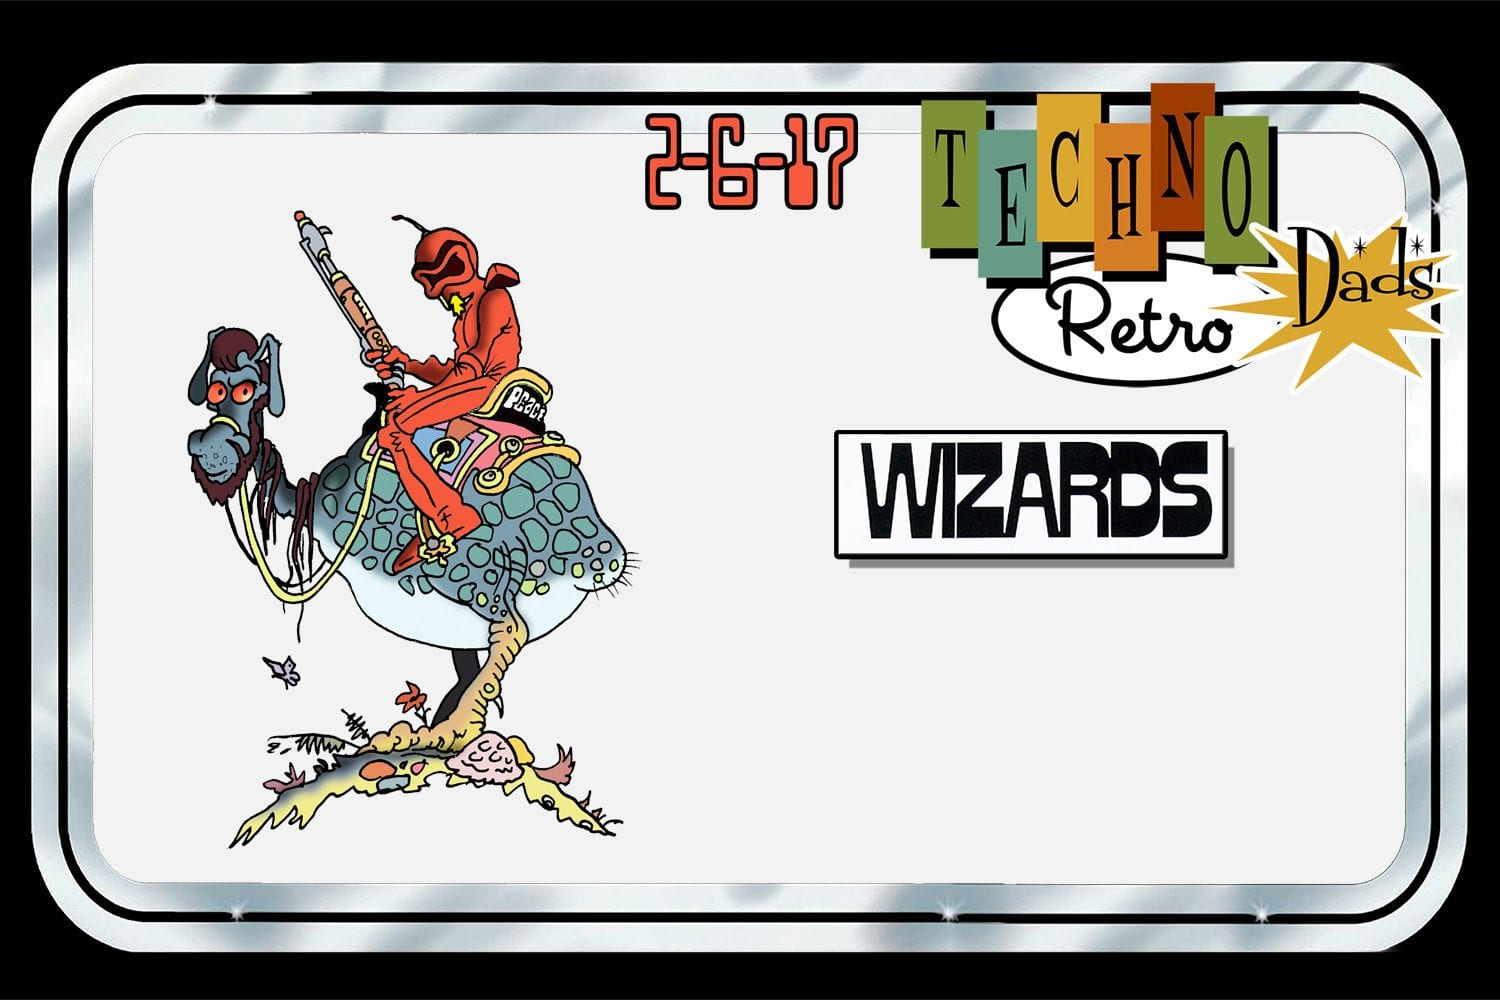 TechnoRetro Dads: Ralph Bakshi's Wizards Sends Aftershocks of 1977 Ten Million Years into the Future